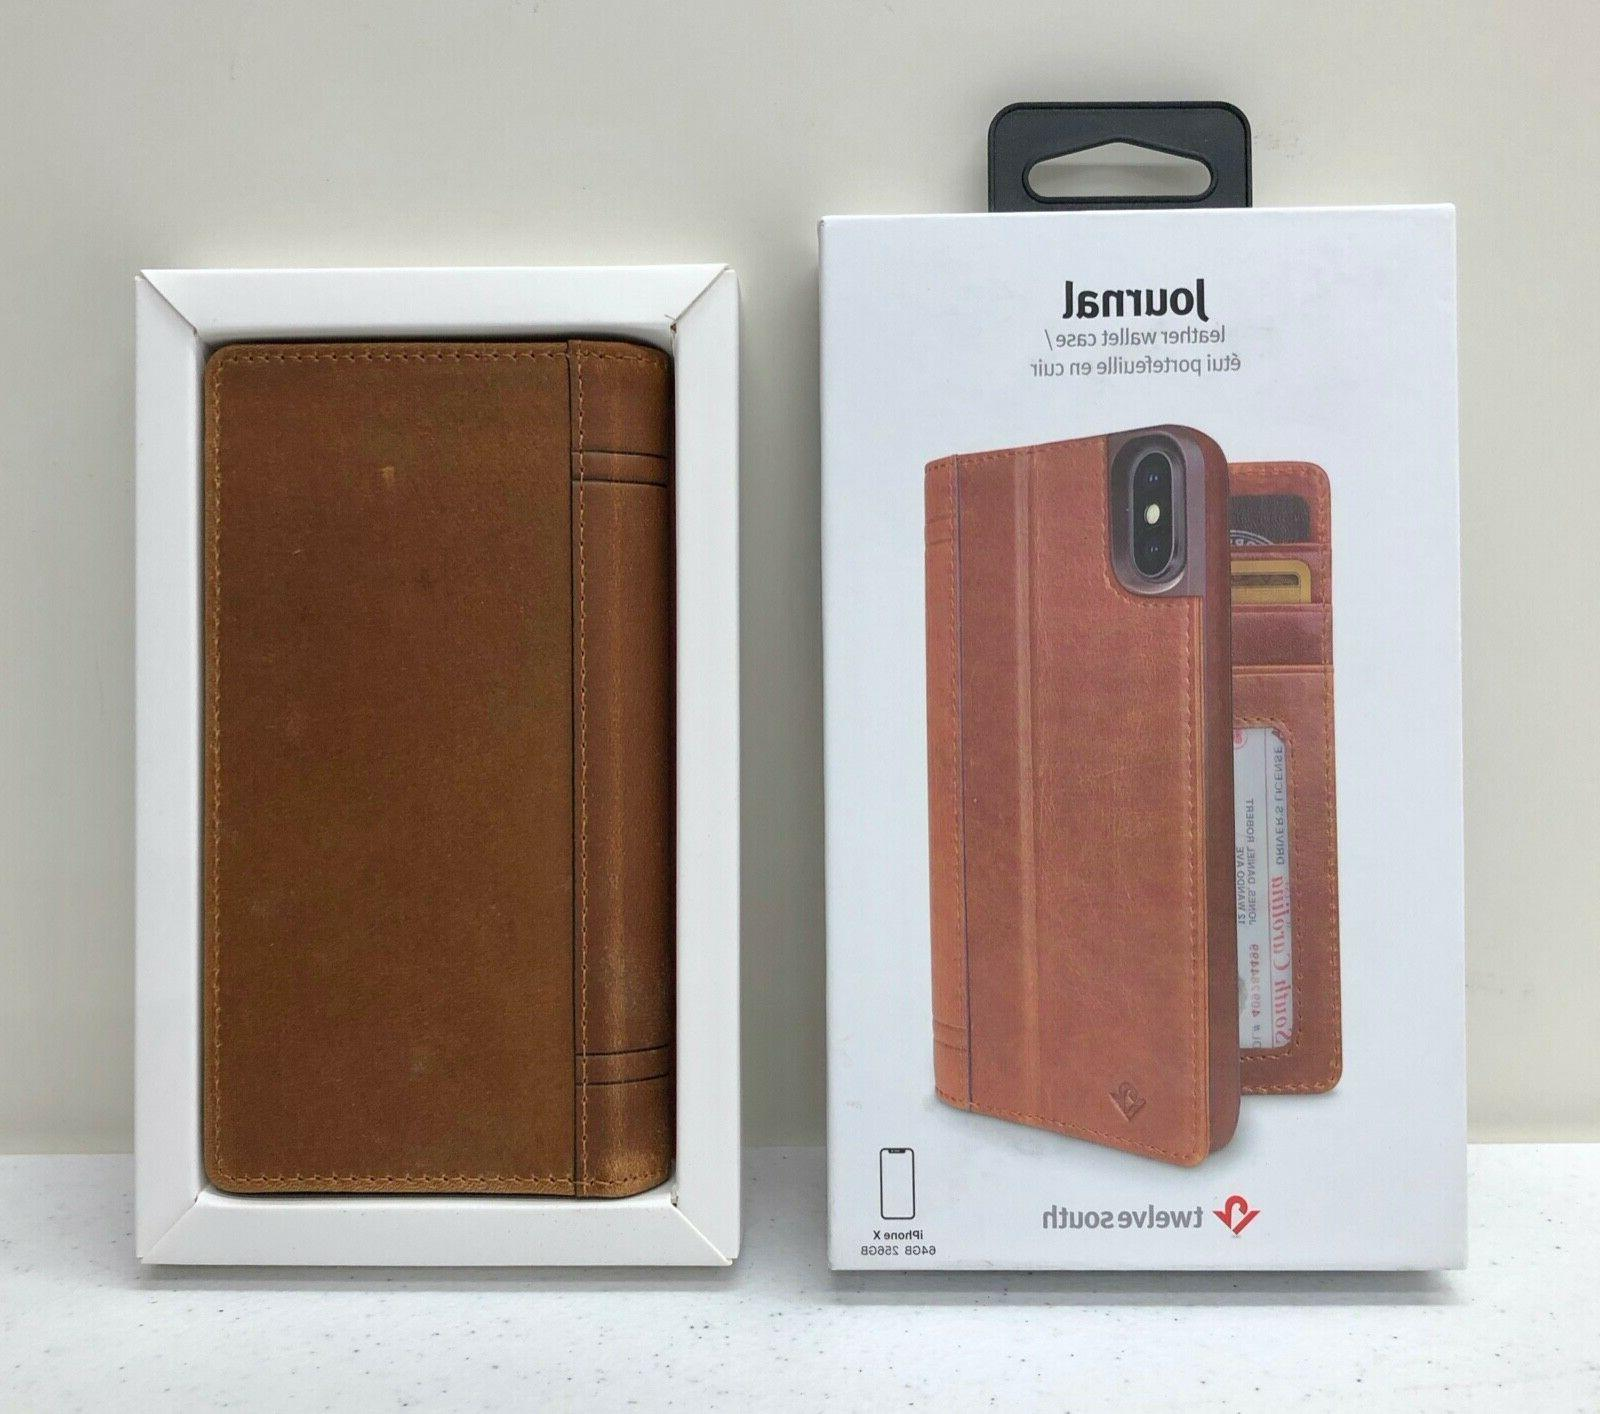 new journal leather wallet phone case shell